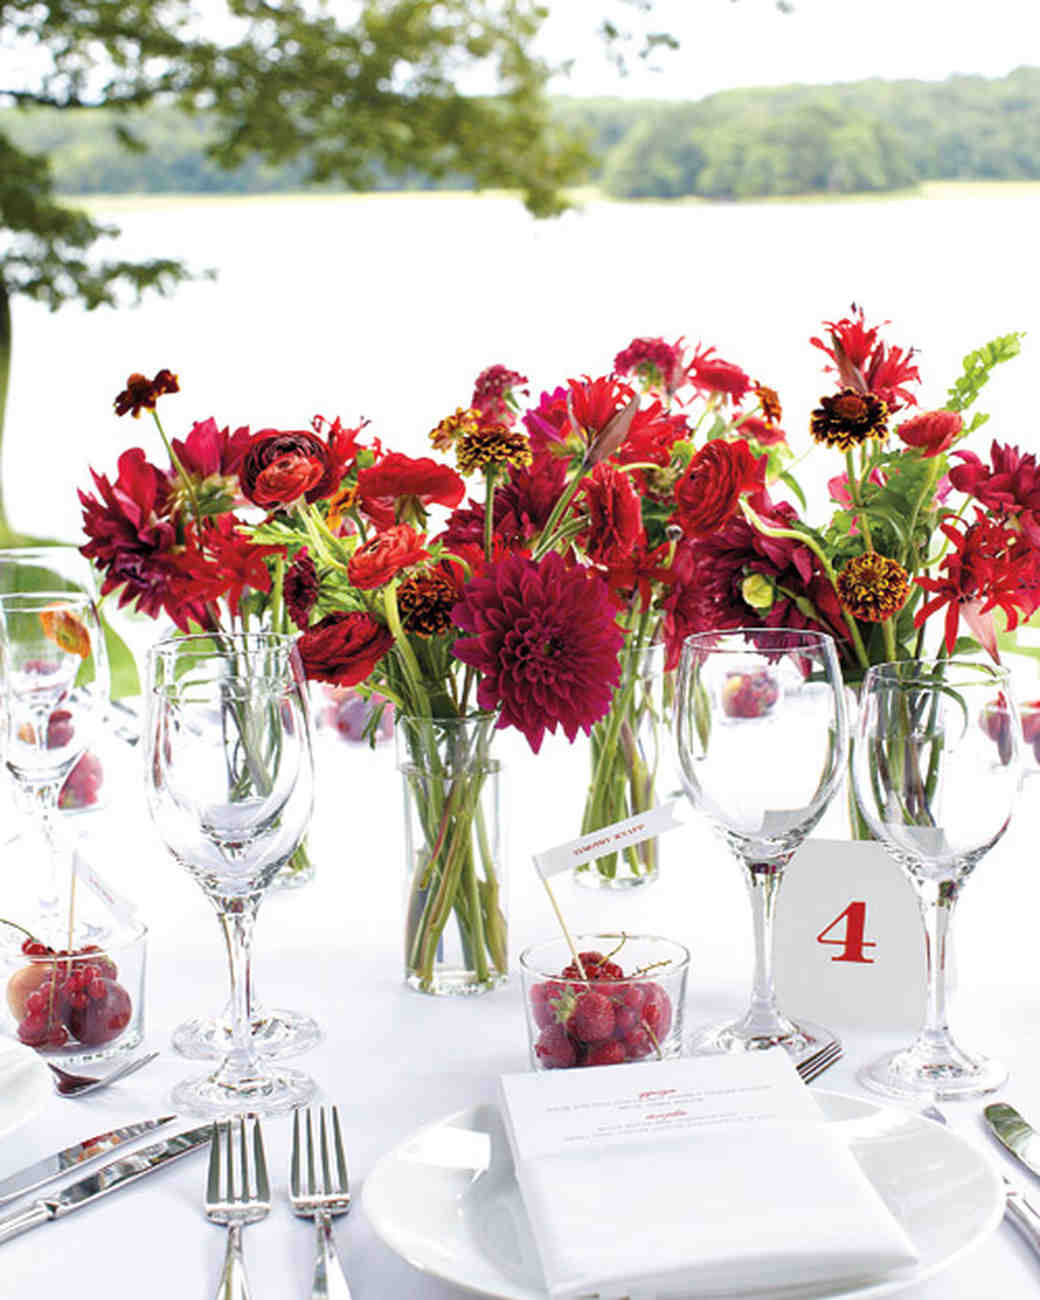 Wedding Centerpieces: Dahlia Wedding Centerpieces